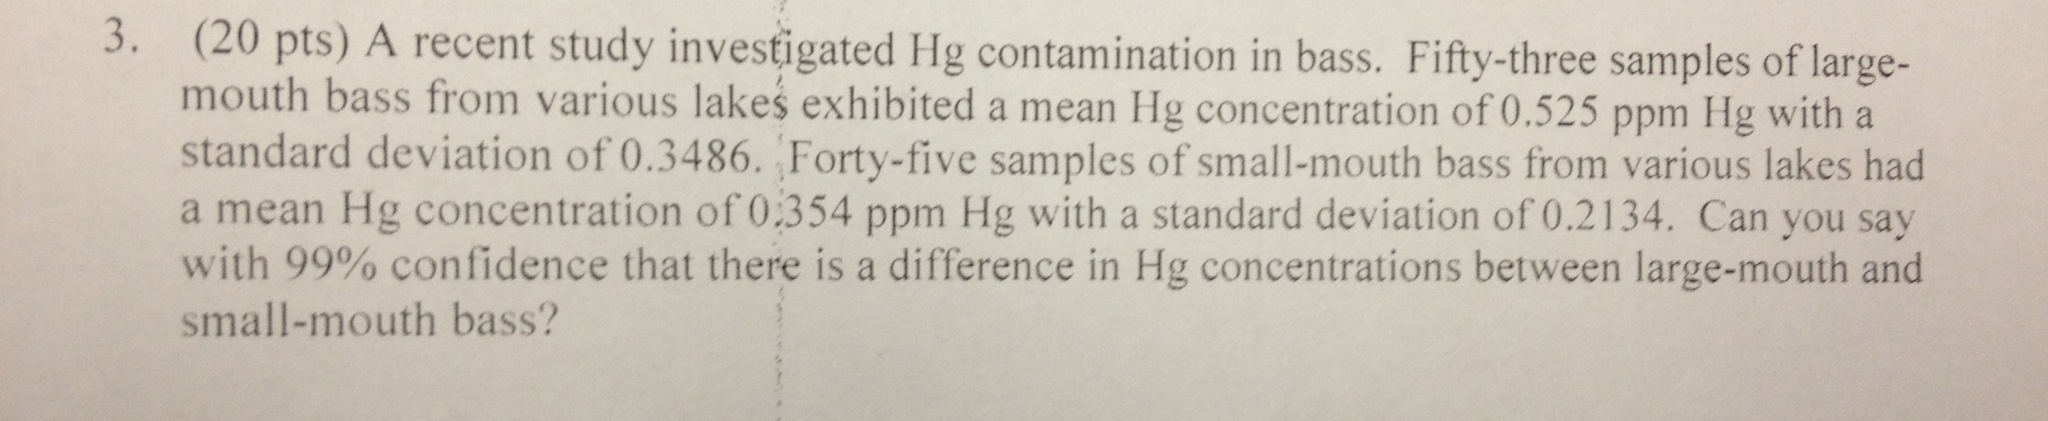 A recent study investigated Hg contamination in ba